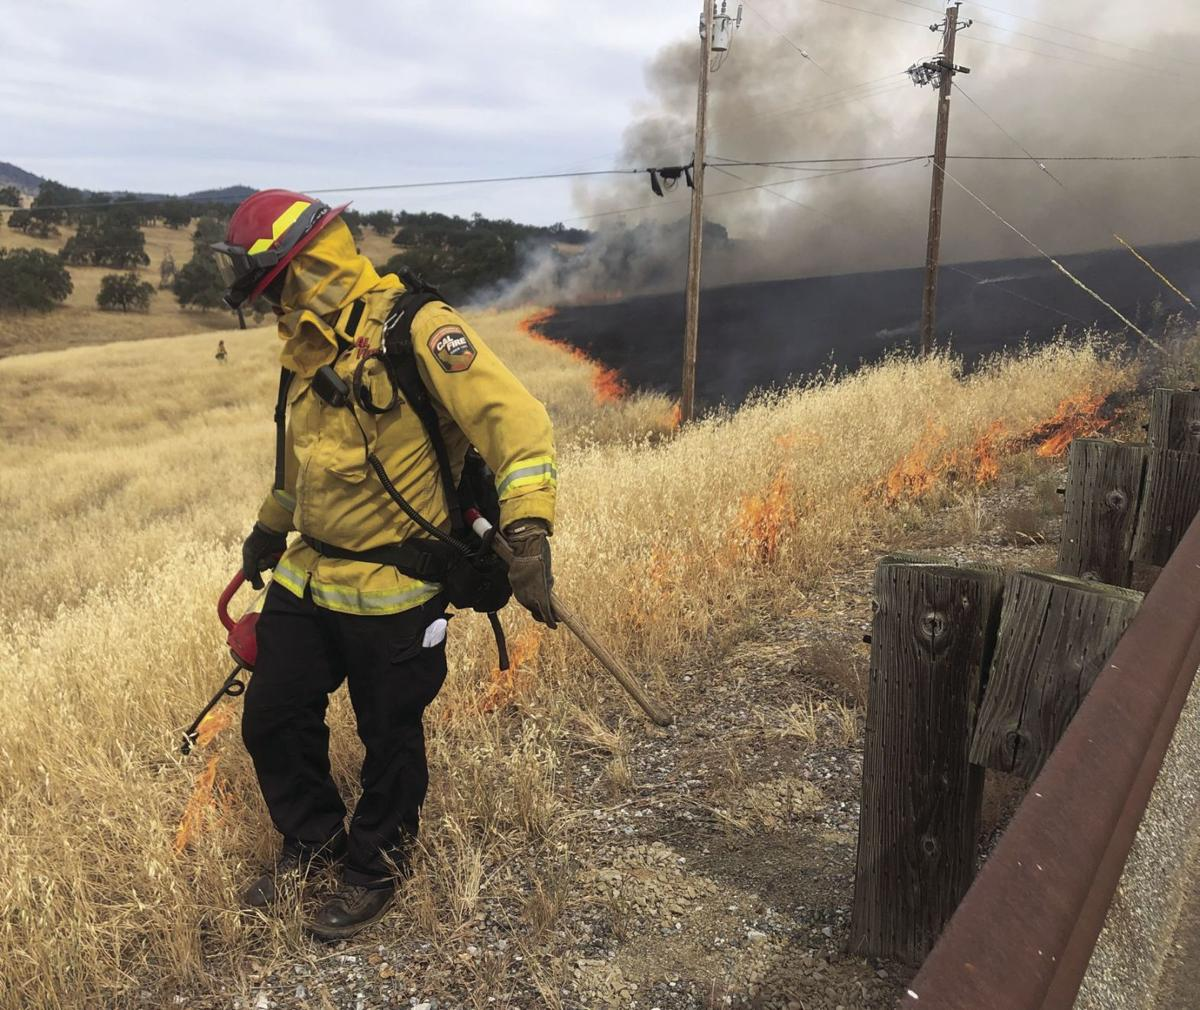 A Cal Fire firefighter torches dry grass near Glory Hole Recreation Area at New Melones in a prescribed burn to protect the community of Angels Camp from a potential wildfire.